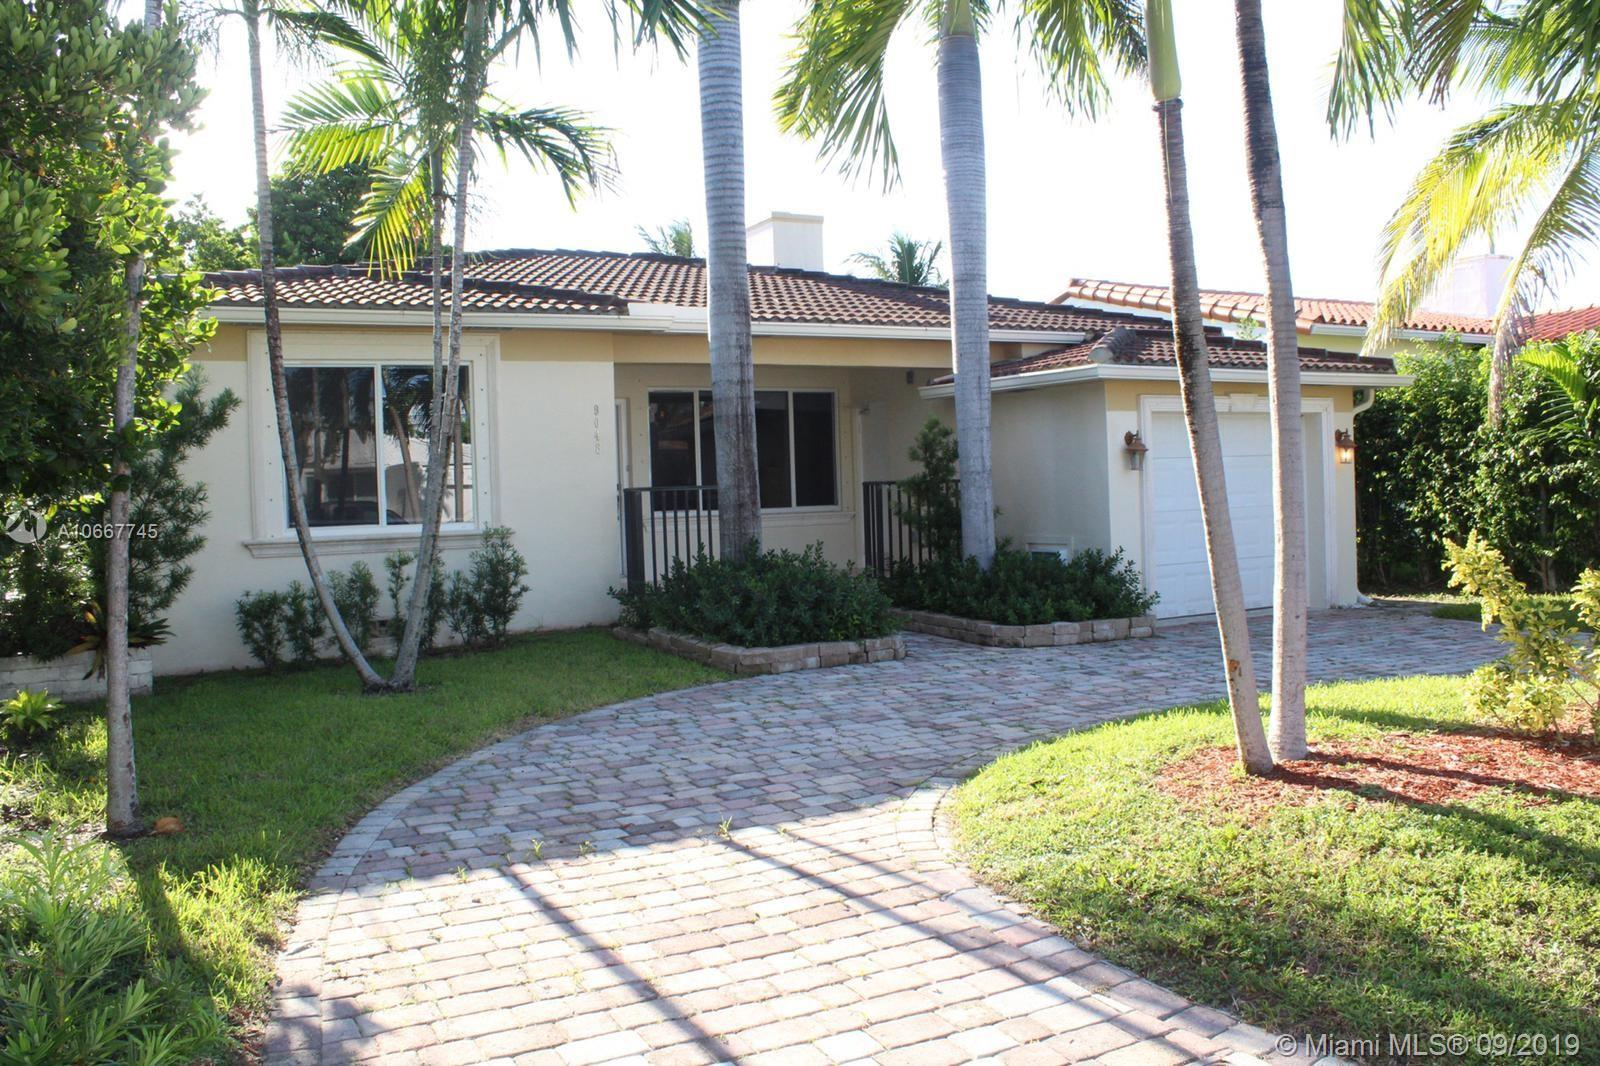 9048  Emerson Ave  For Sale A10667745, FL